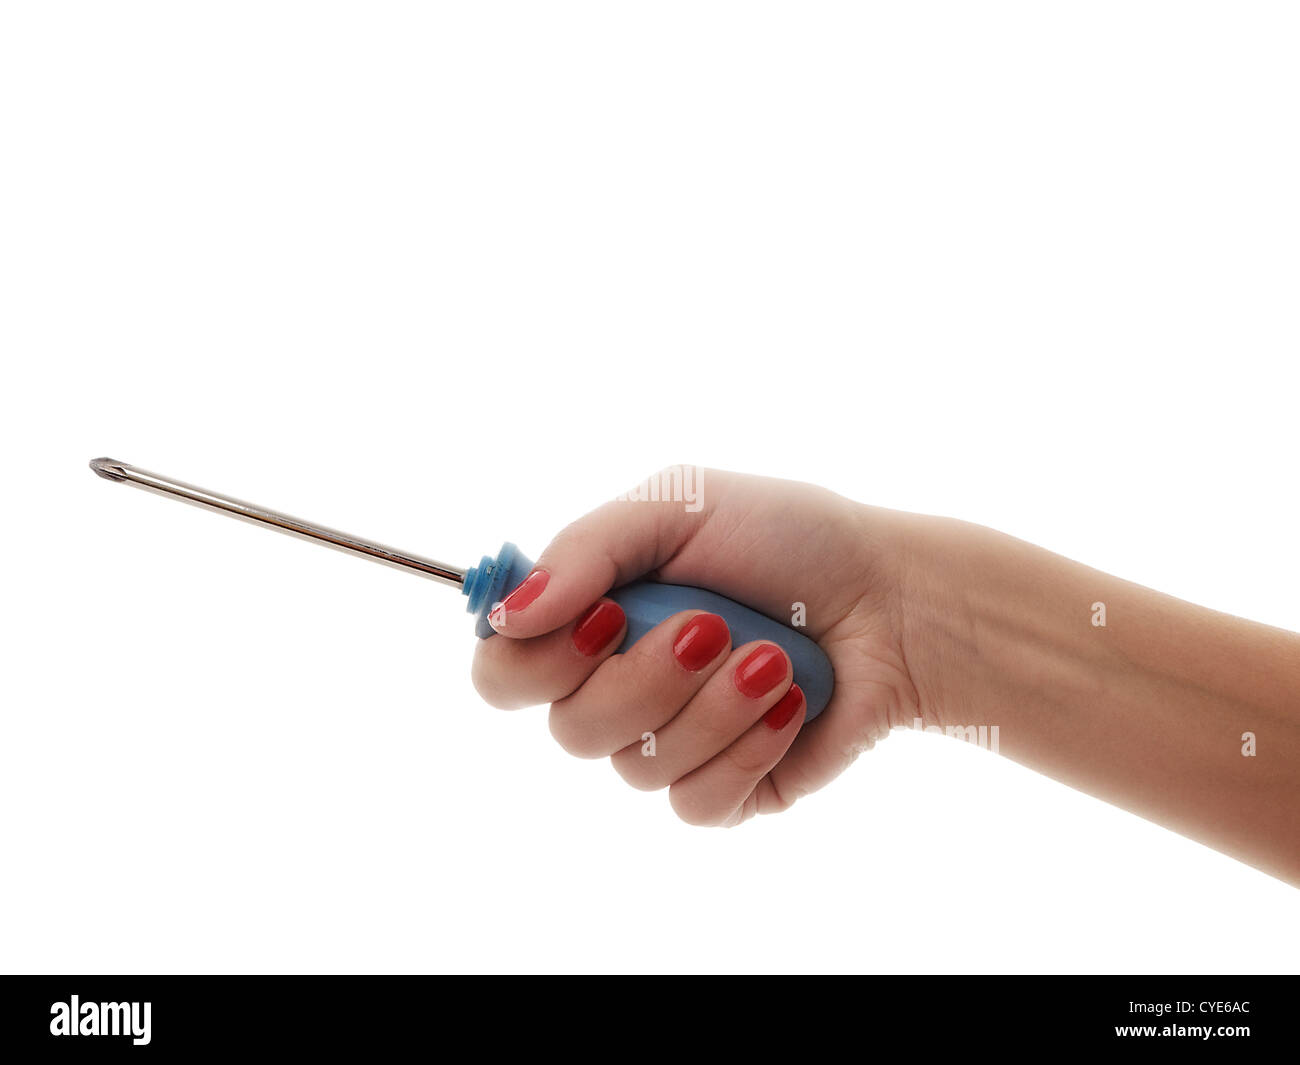 woman hand working with screwdriver Stock Photo